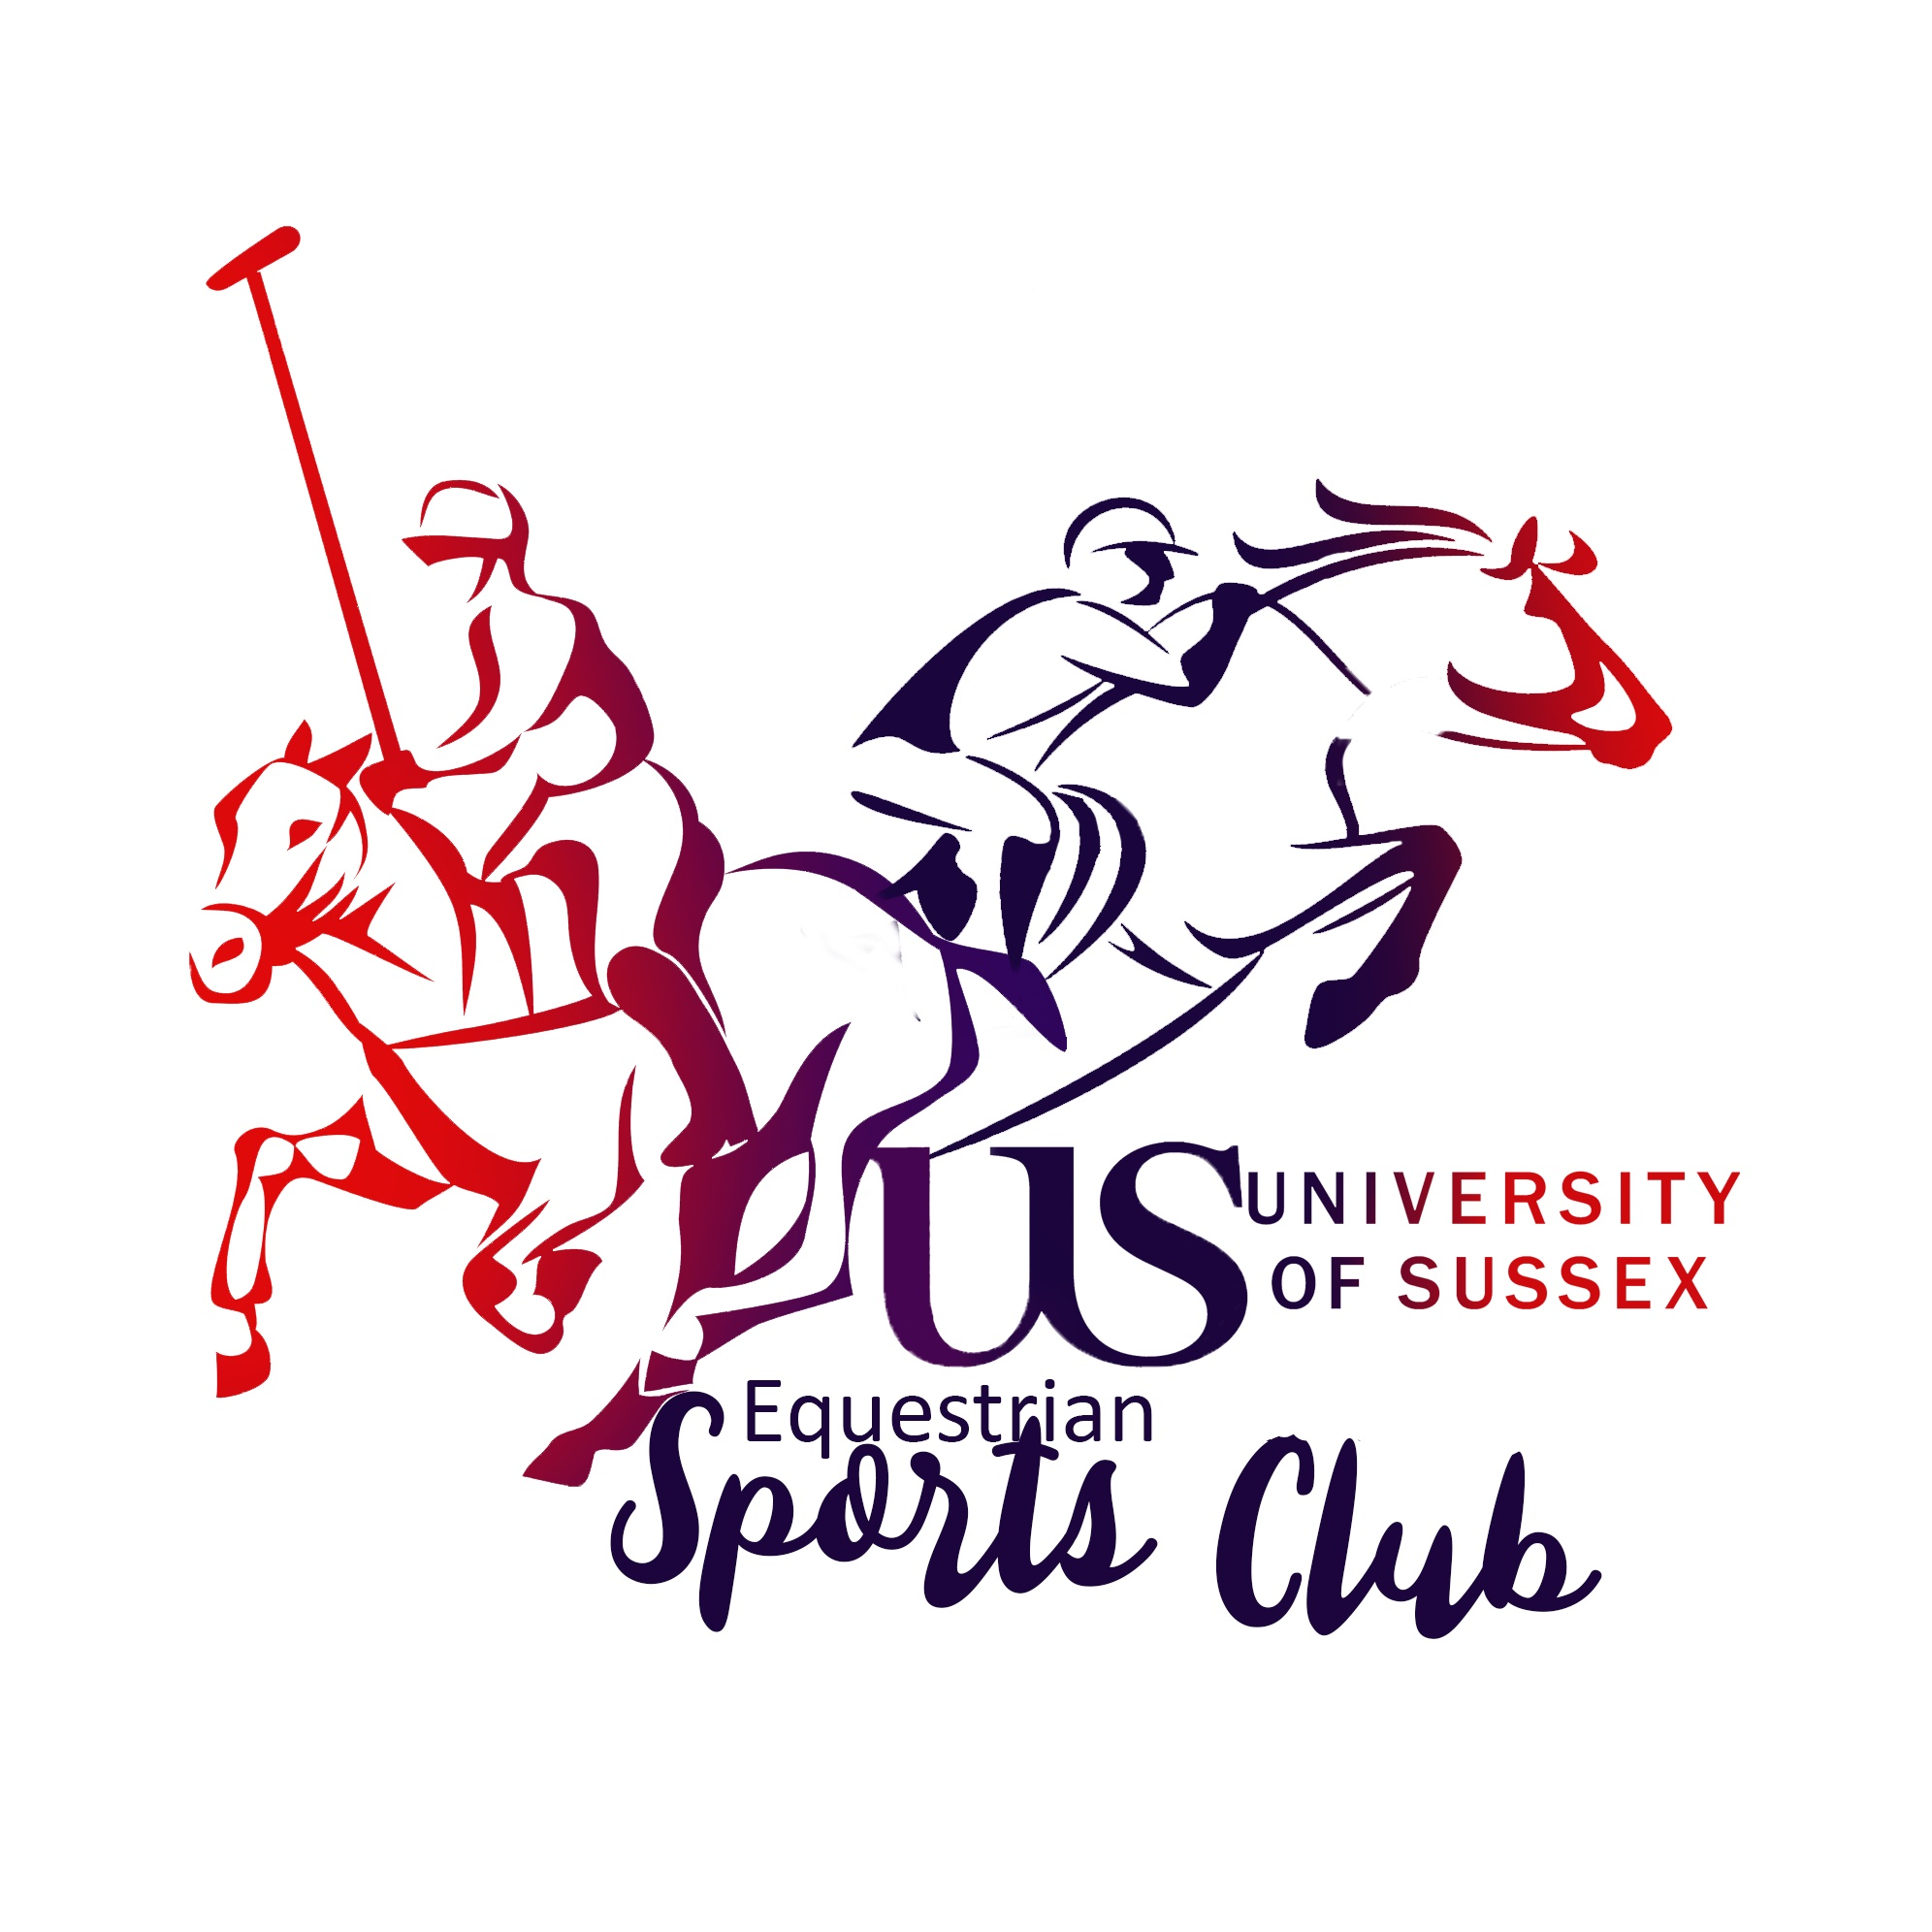 Equestrian Sports Club image